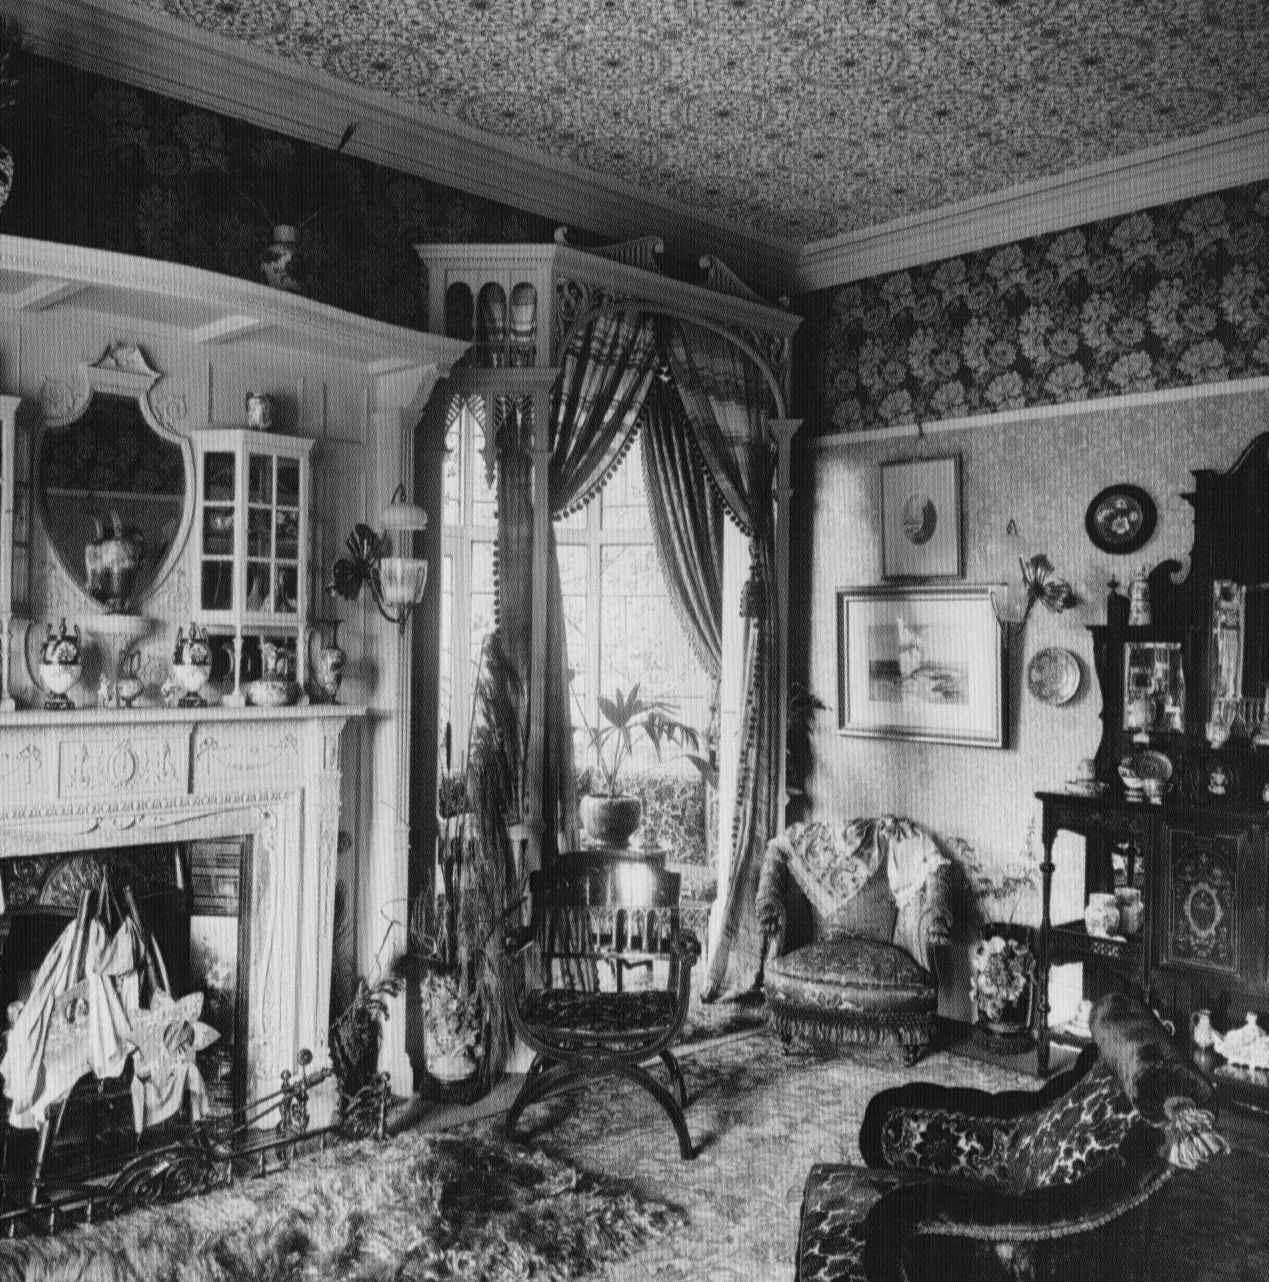 Victorian Drawing Room: Drawing Room 1890 With Morris Wallpaper And Rug.... So